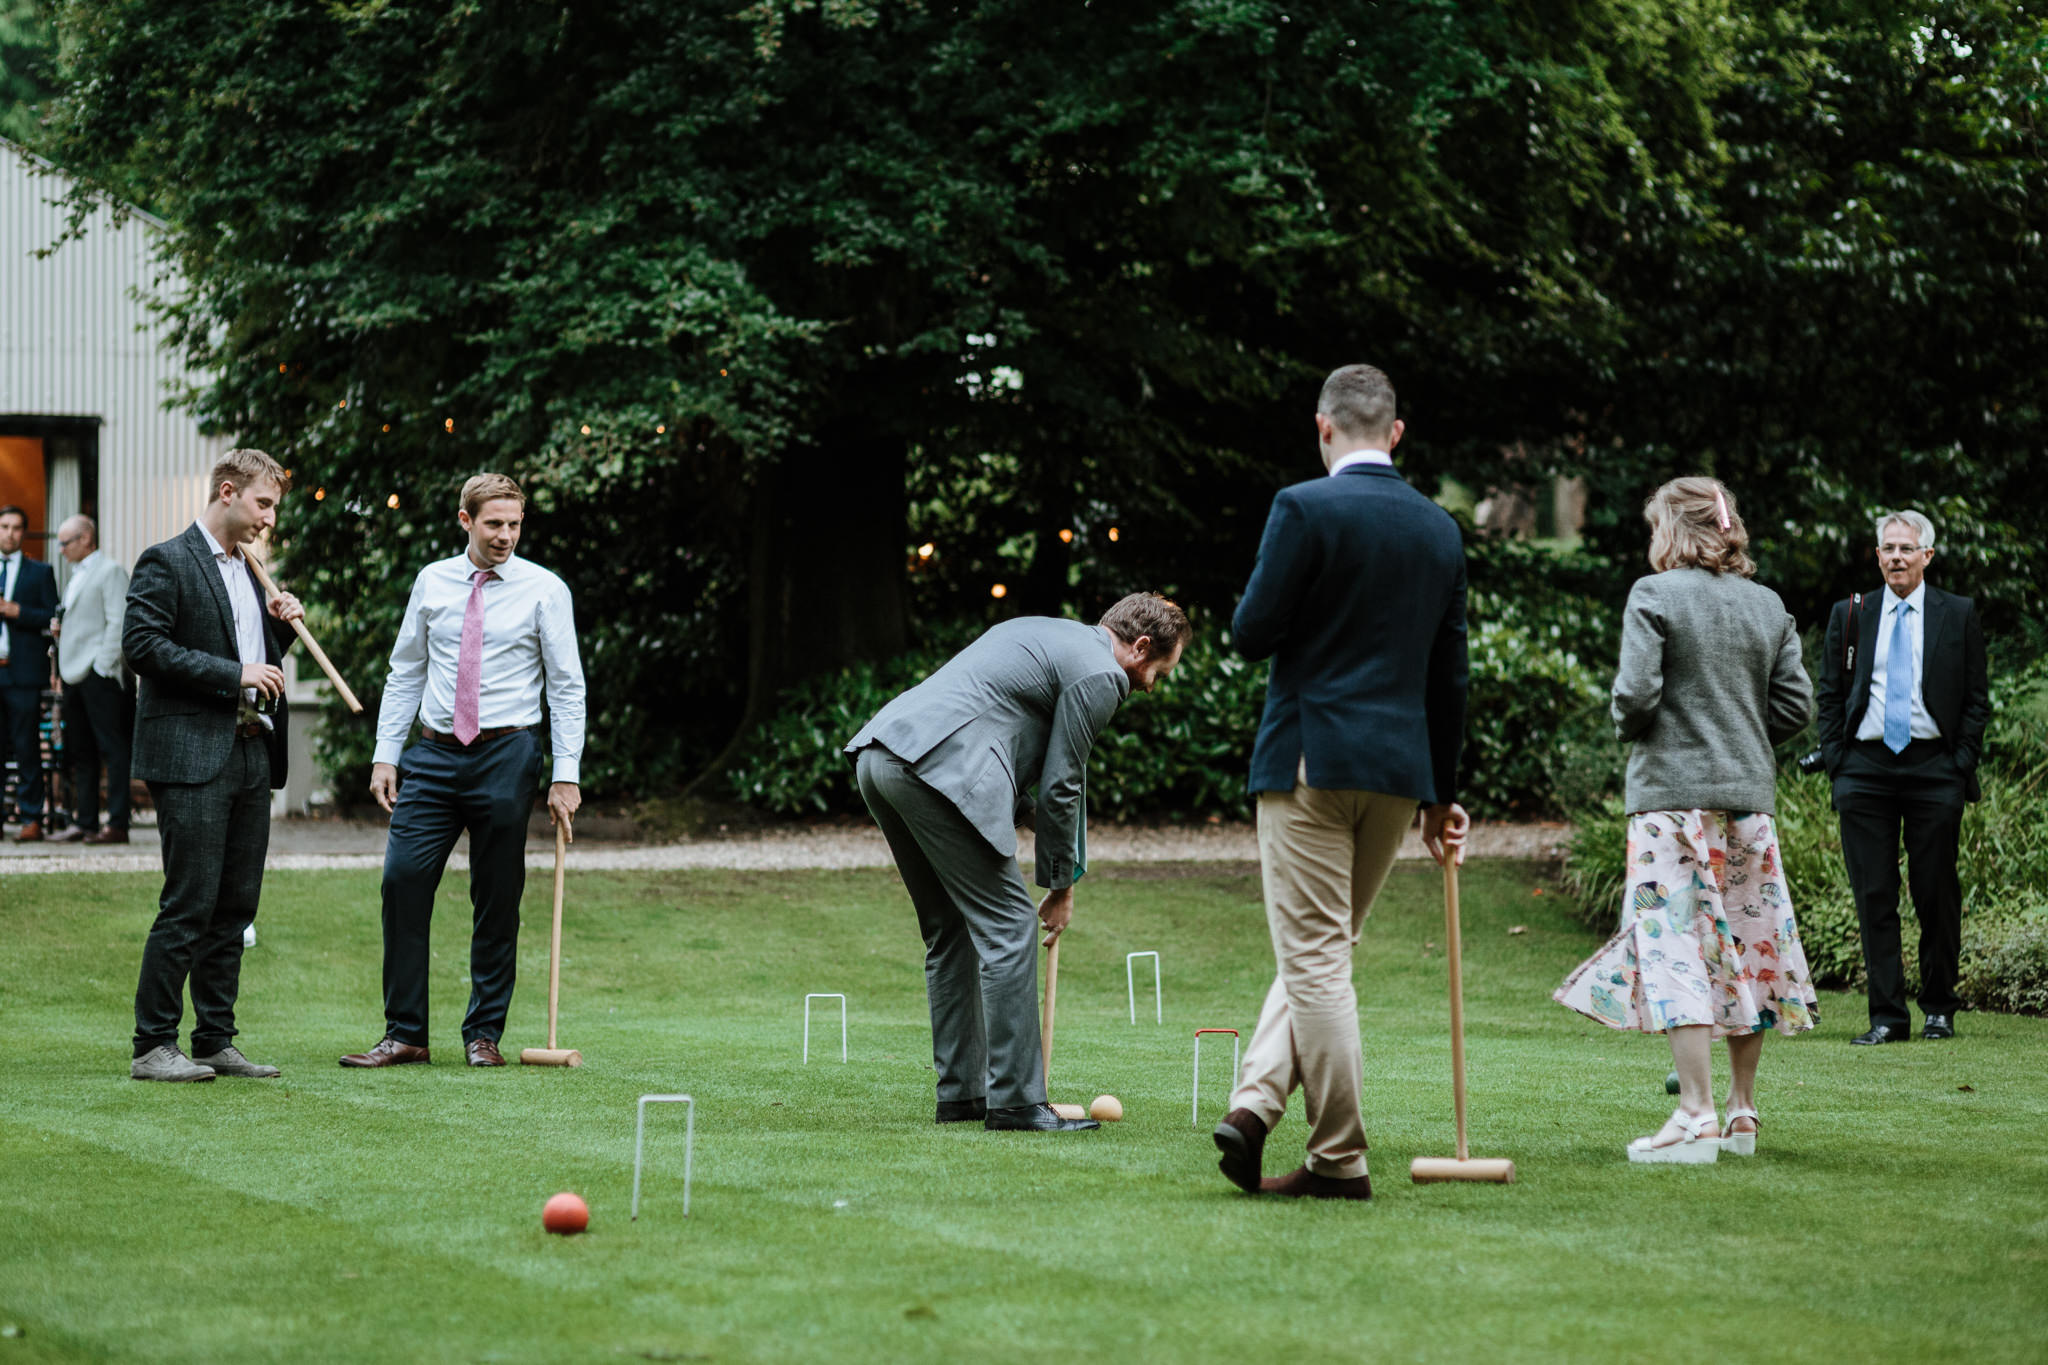 garden games for weddings ideas